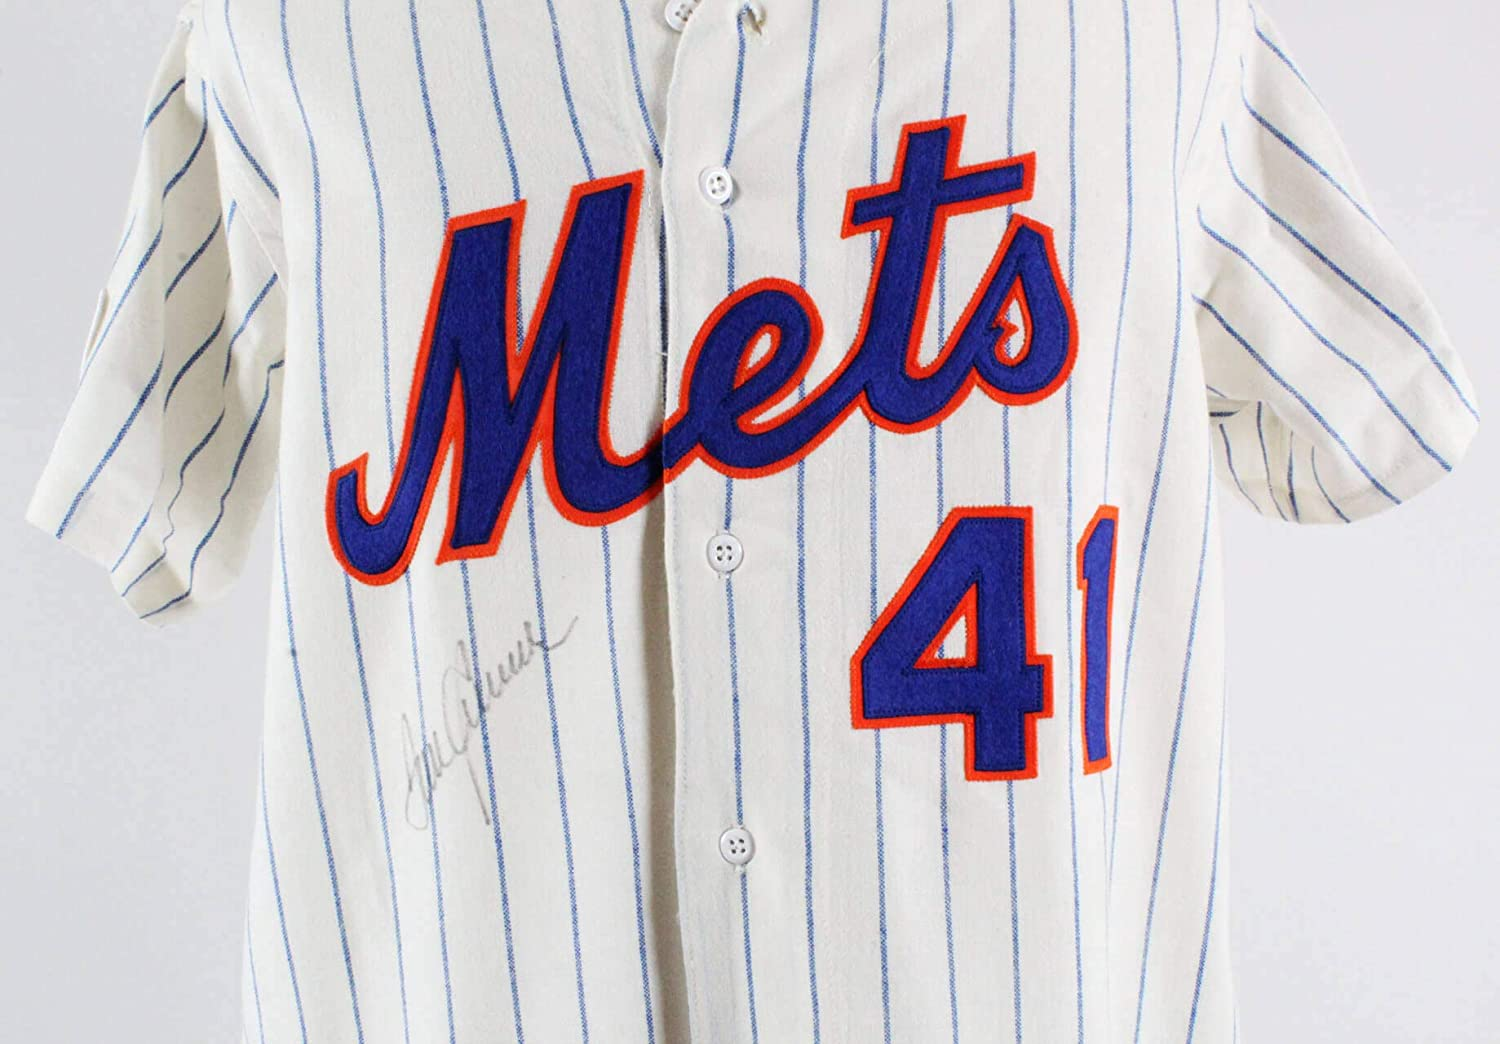 8a005327b7f Tom Seaver Signed Jersey New York Mets - COA at Amazon's Sports  Collectibles Store